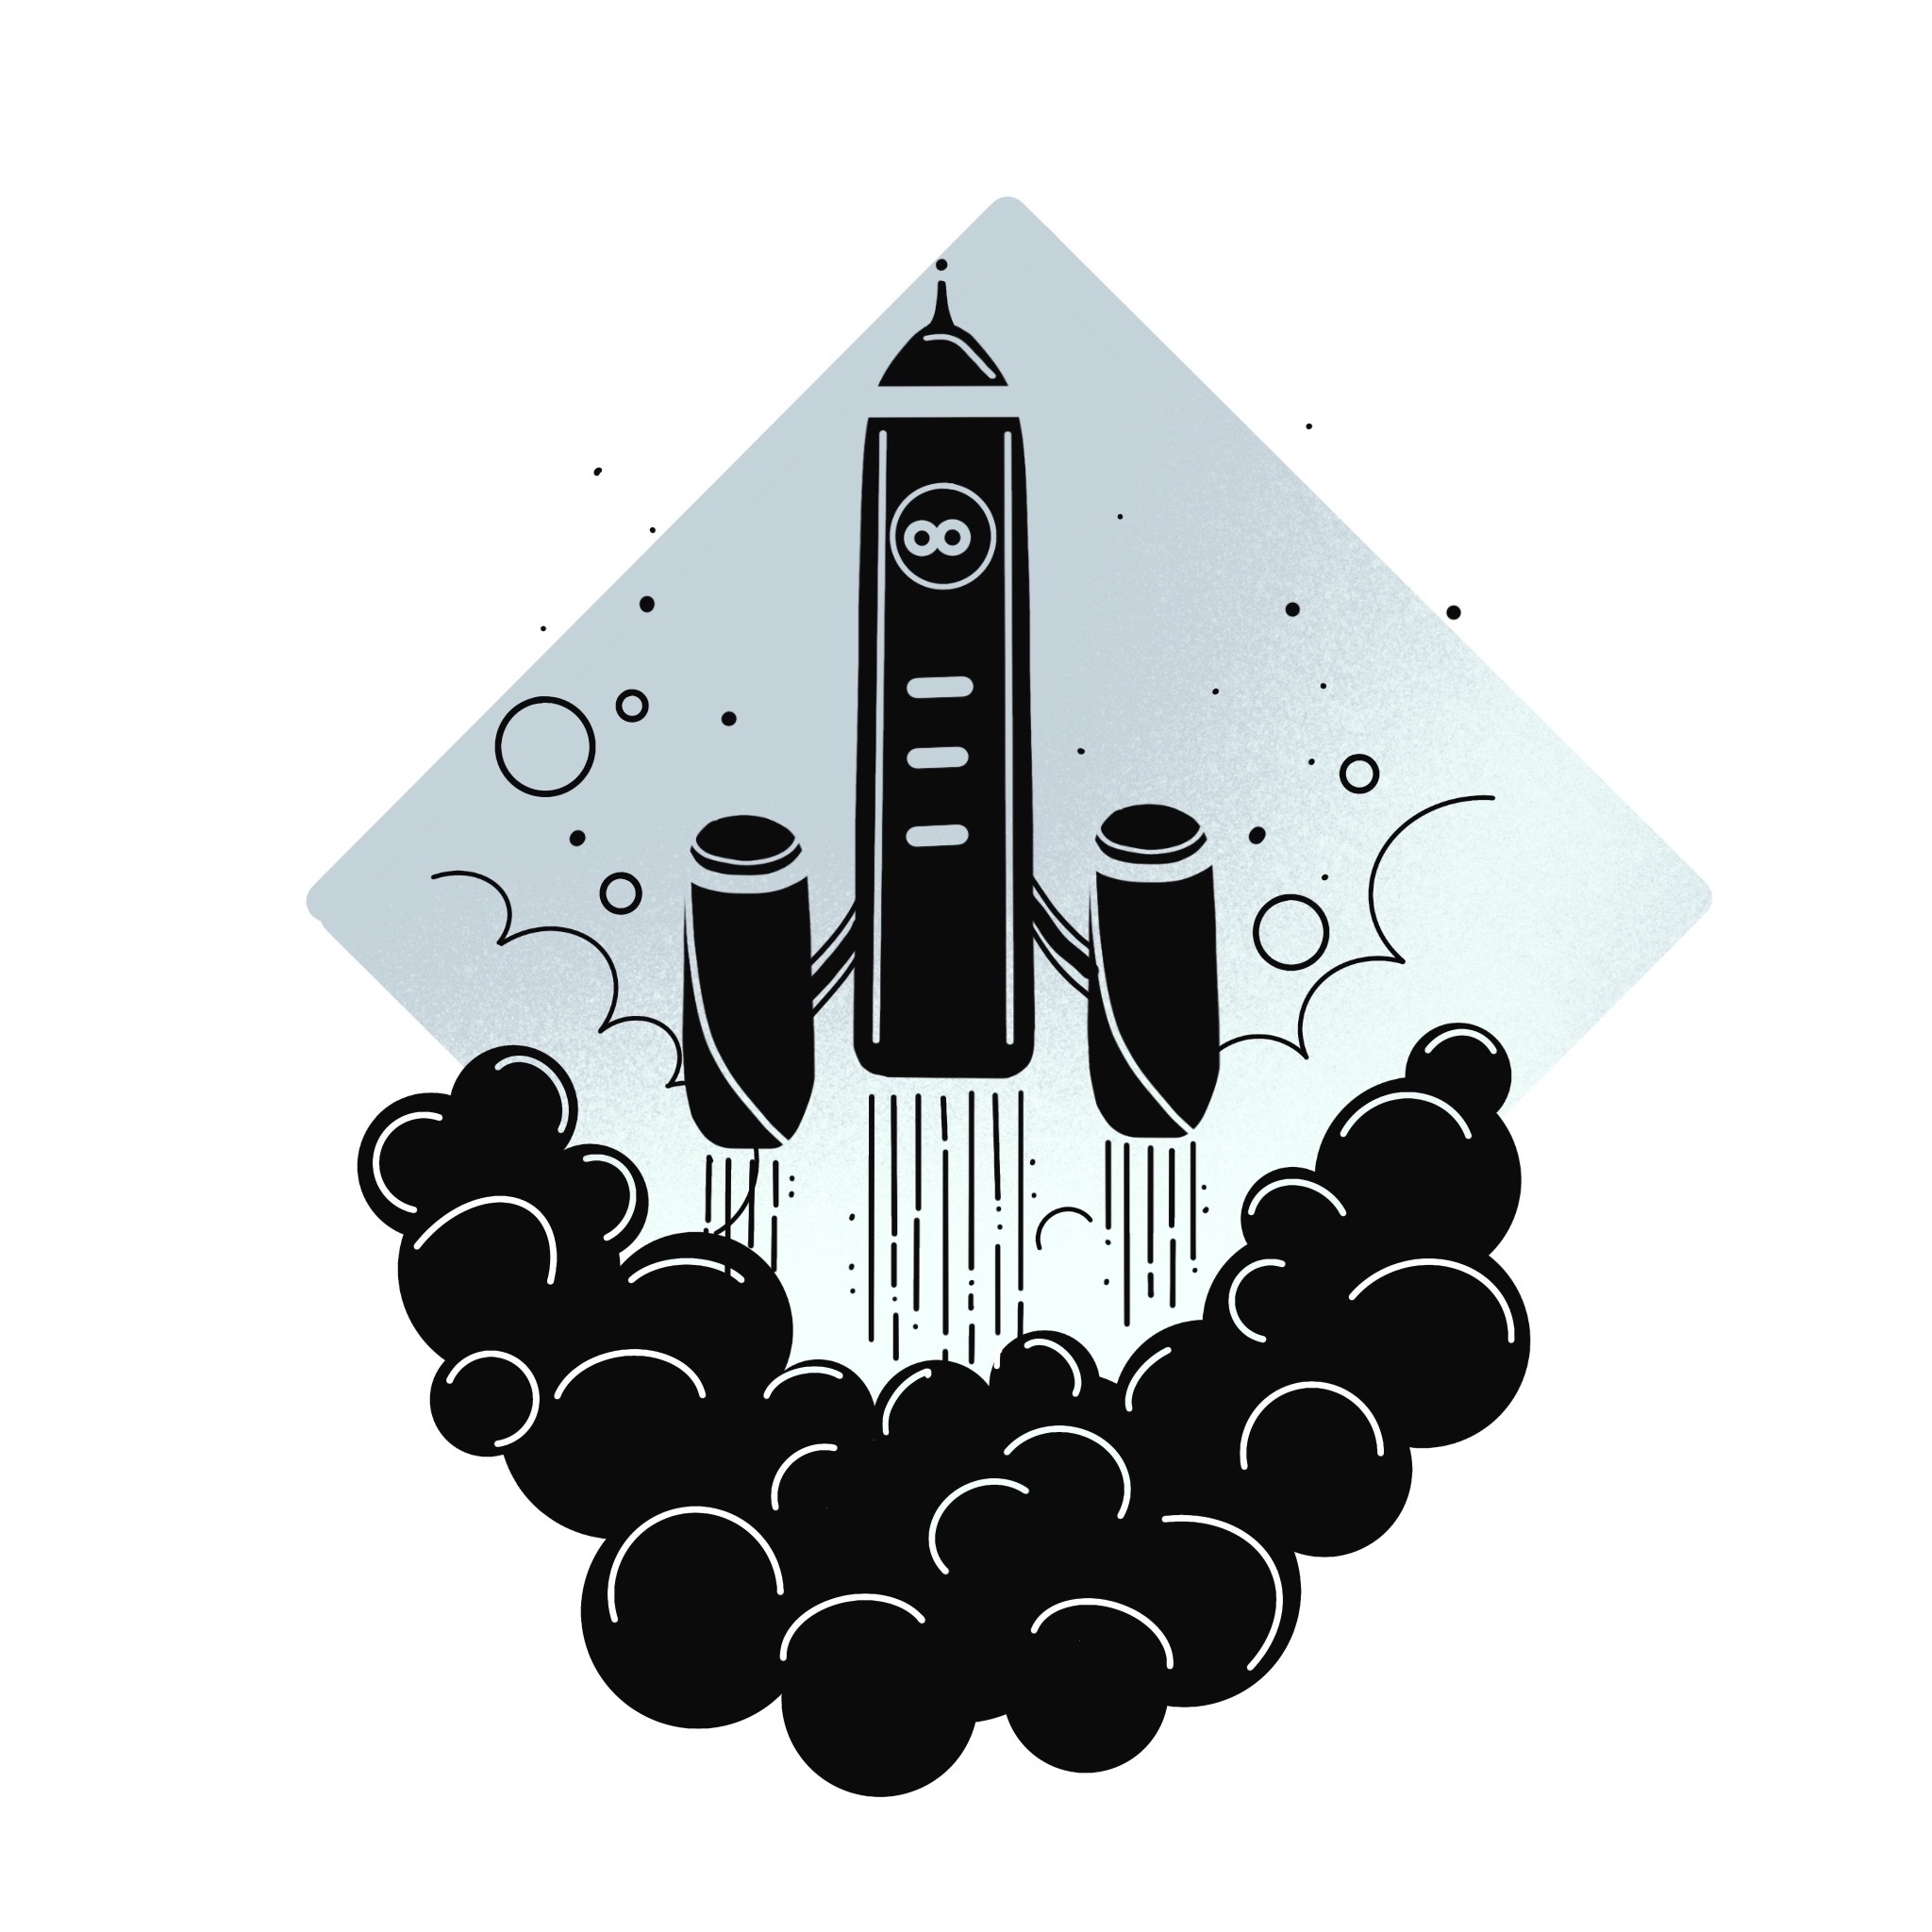 Icon of a launching space rocket